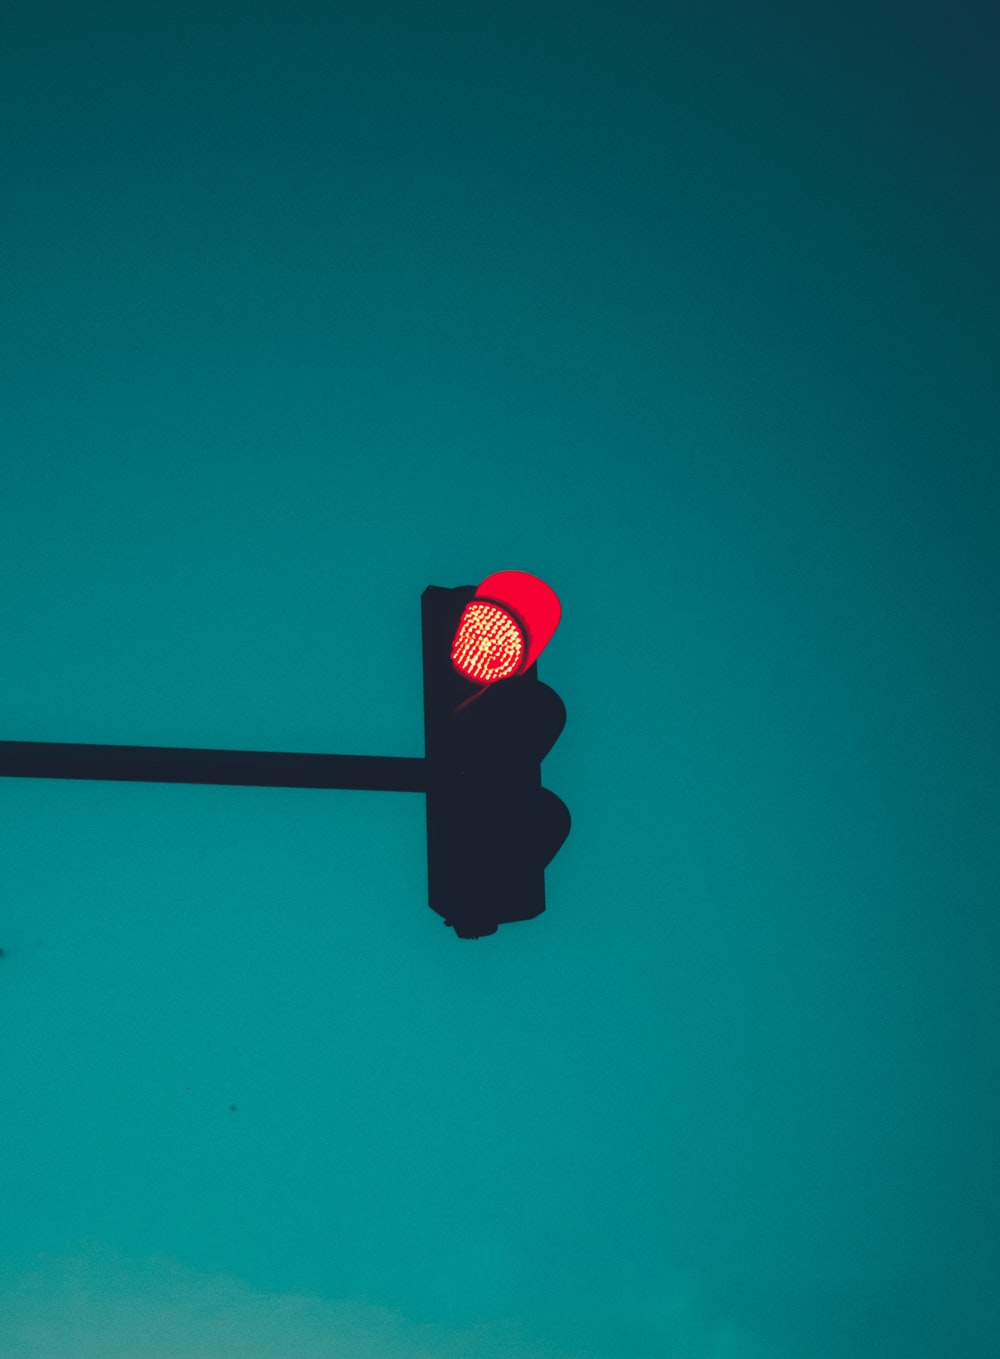 red stop light on green background